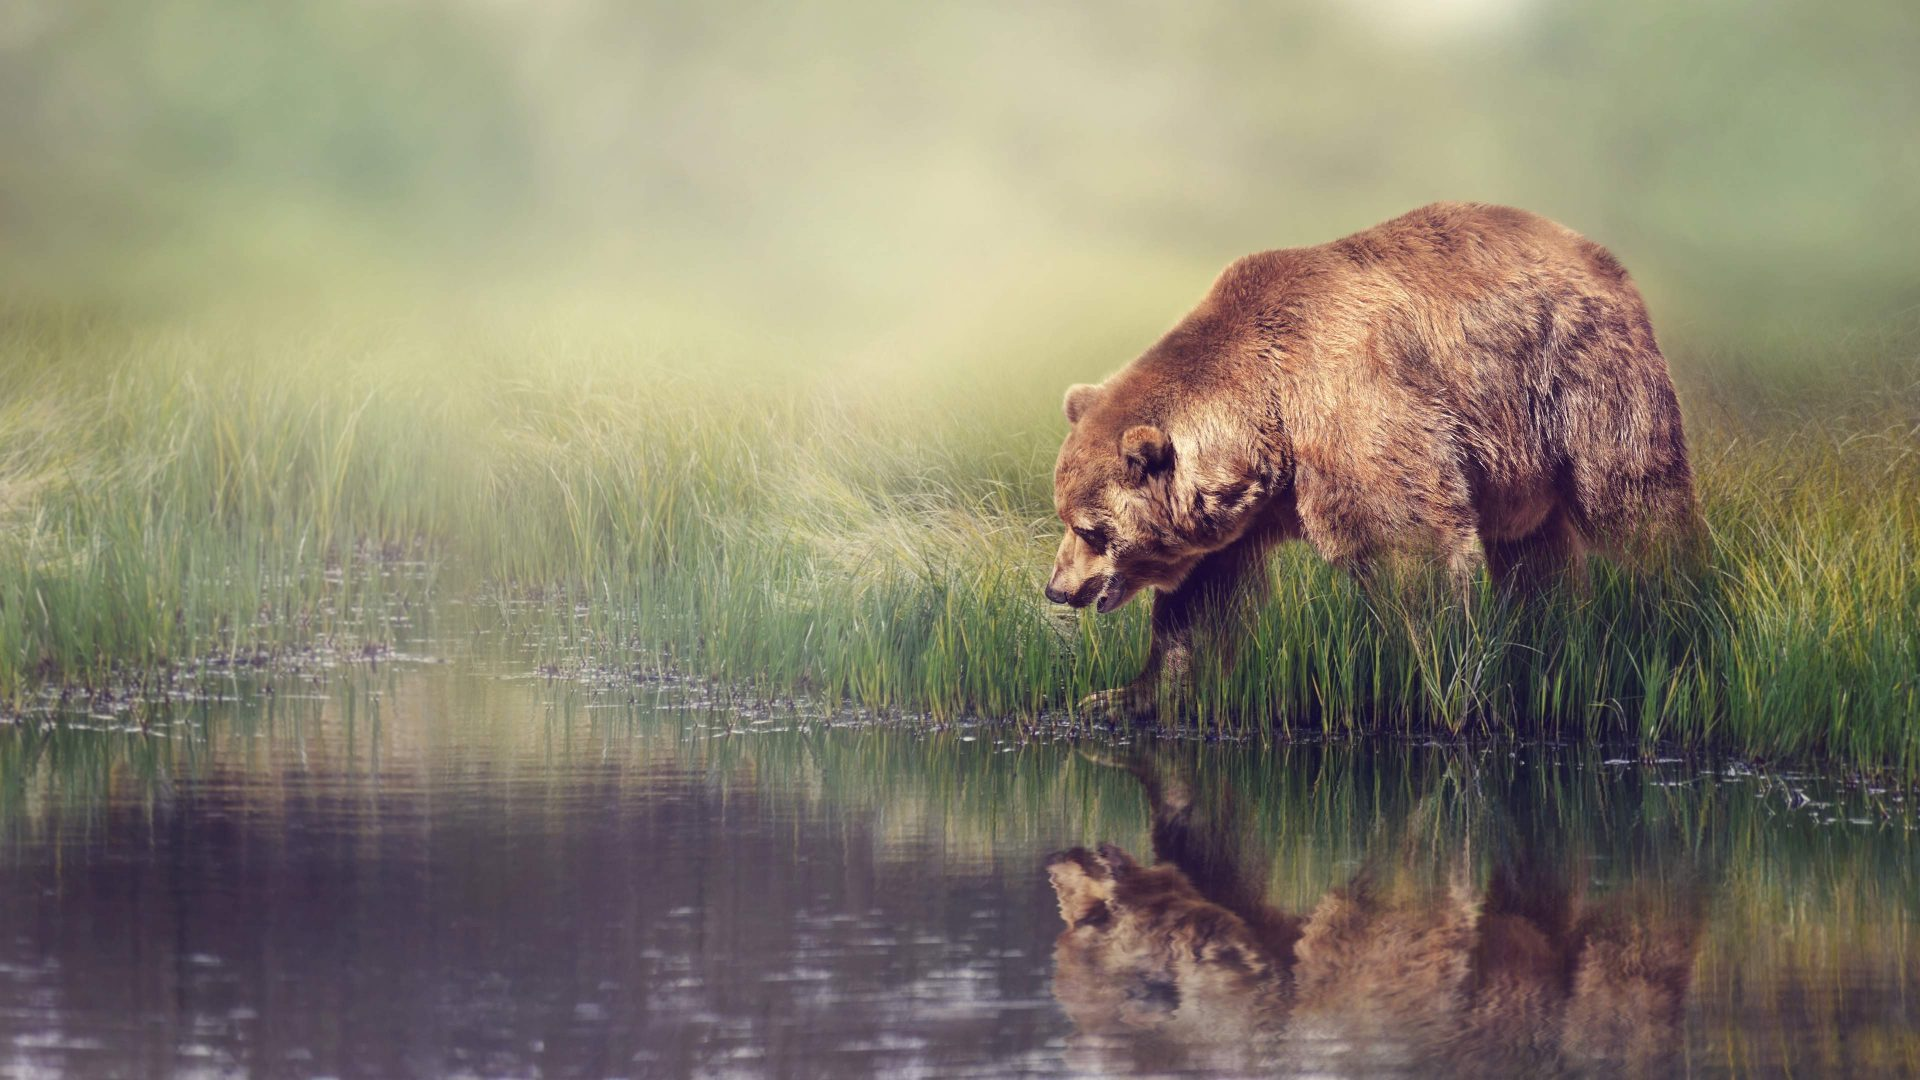 Grizzly-Bear-and-Reflection-1920x1080-See-more-on-Classy-Bro-wallpaper-wpc5805598